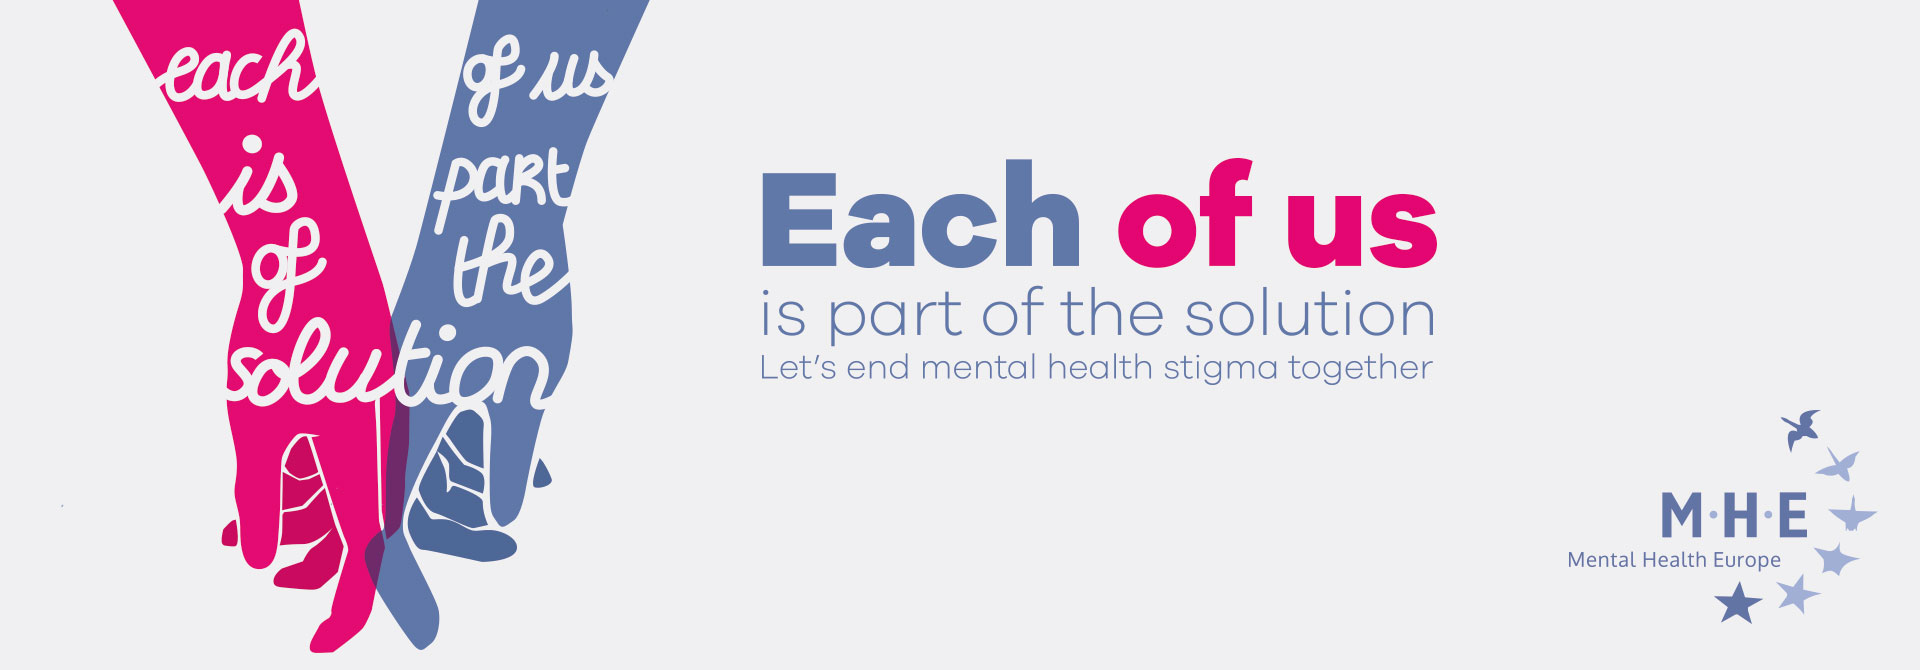 mental_health_europe_each_of_us